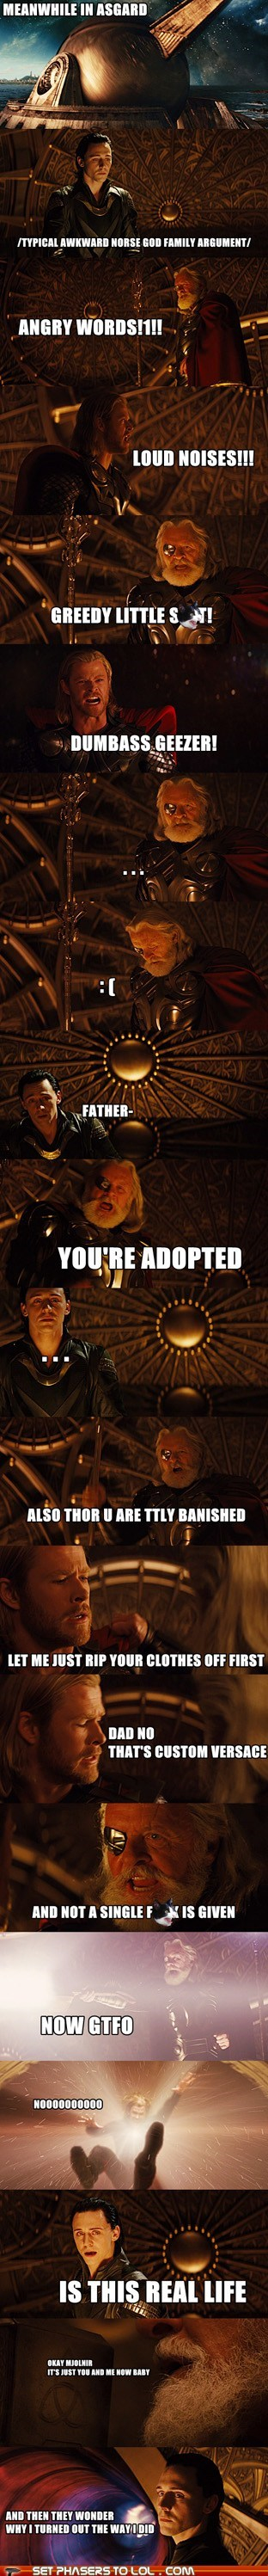 Family Drama in Asgard